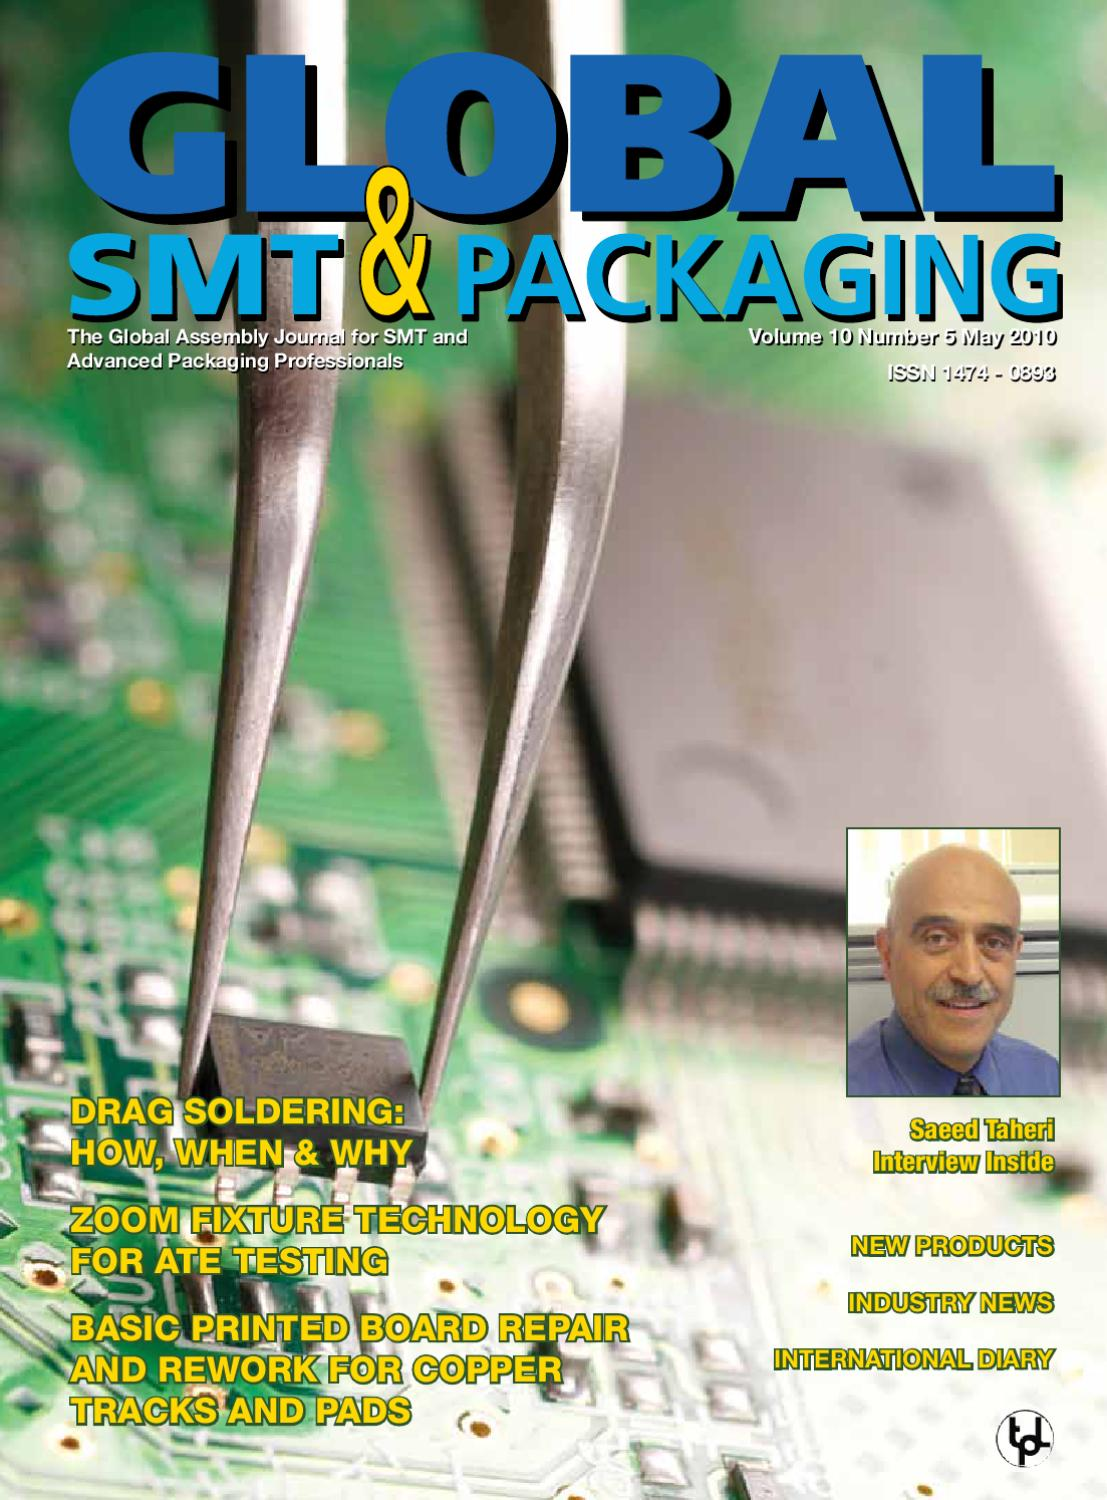 Global Smt Packaging May 2010 European Edition By Trafalgar Circuit Board Recycling Equipmentoffer Copper Wire Machine Publications Issuu